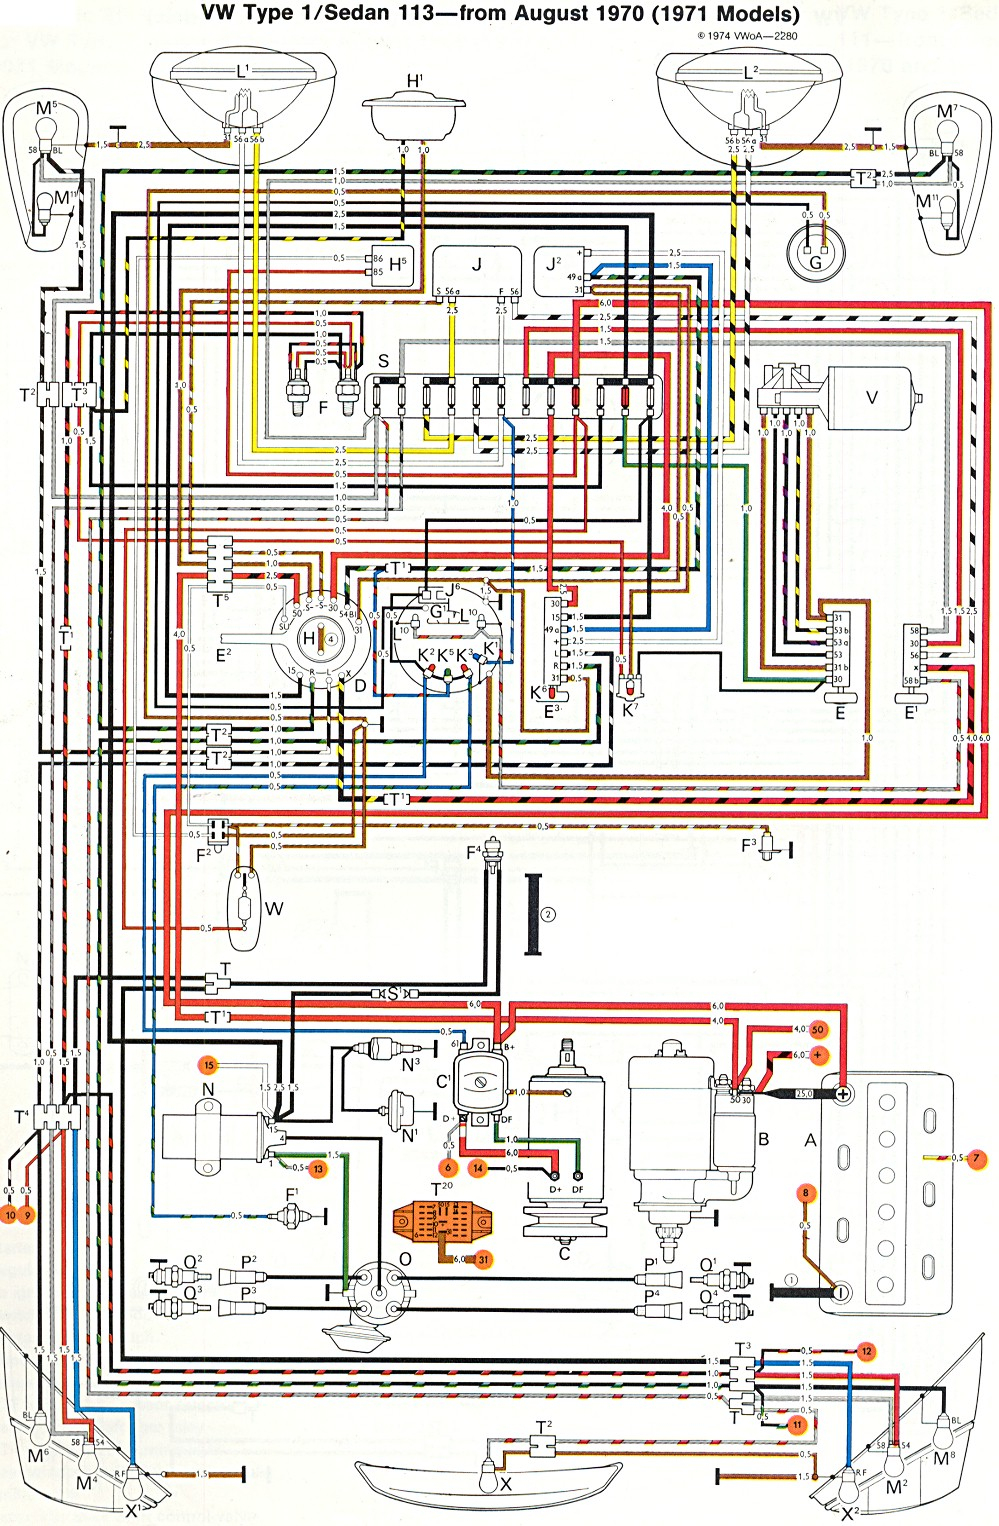 1973 Vw Beetle Wiring Diagram | Wiring Diagram - 1973 Vw Beetle Wiring Diagram